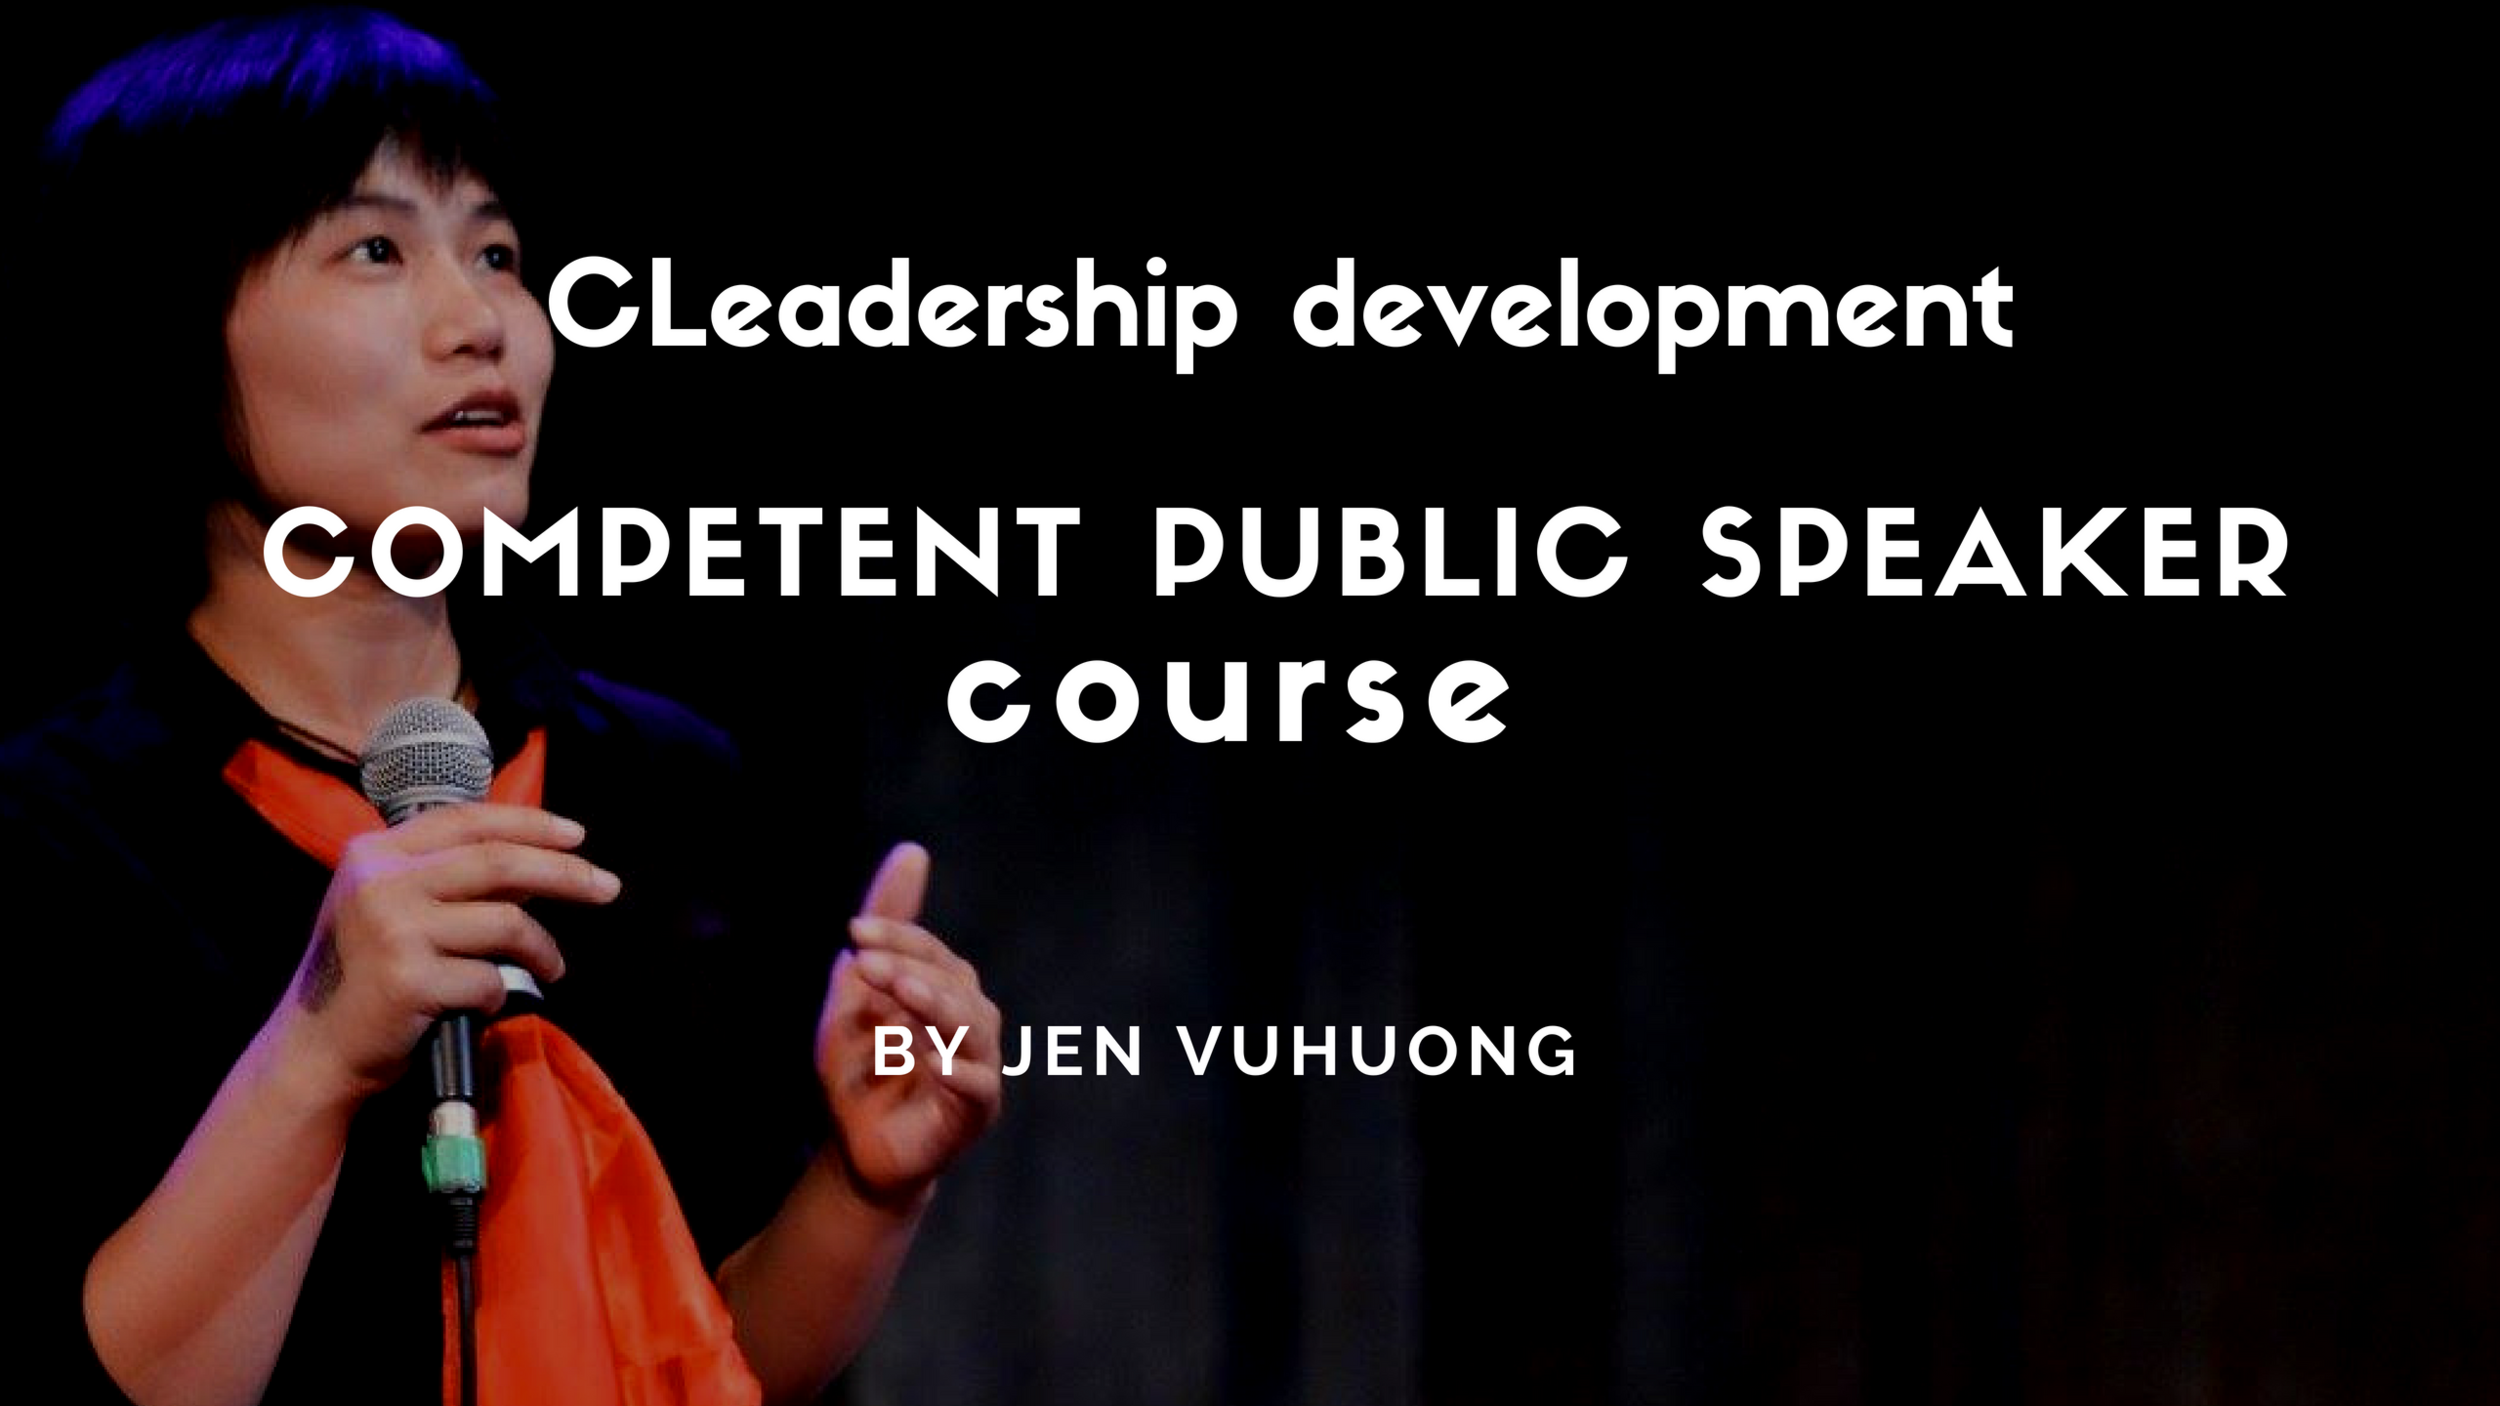 Mindset + tools + strategies to embrace your speaking identity as a competent speaker/communicator/leader  (Based on Jen's speaking journey over the last decade in more than 10 countries, winning first prize in the US Embassy, International public speaking contest in Malaysia, Vietnam)